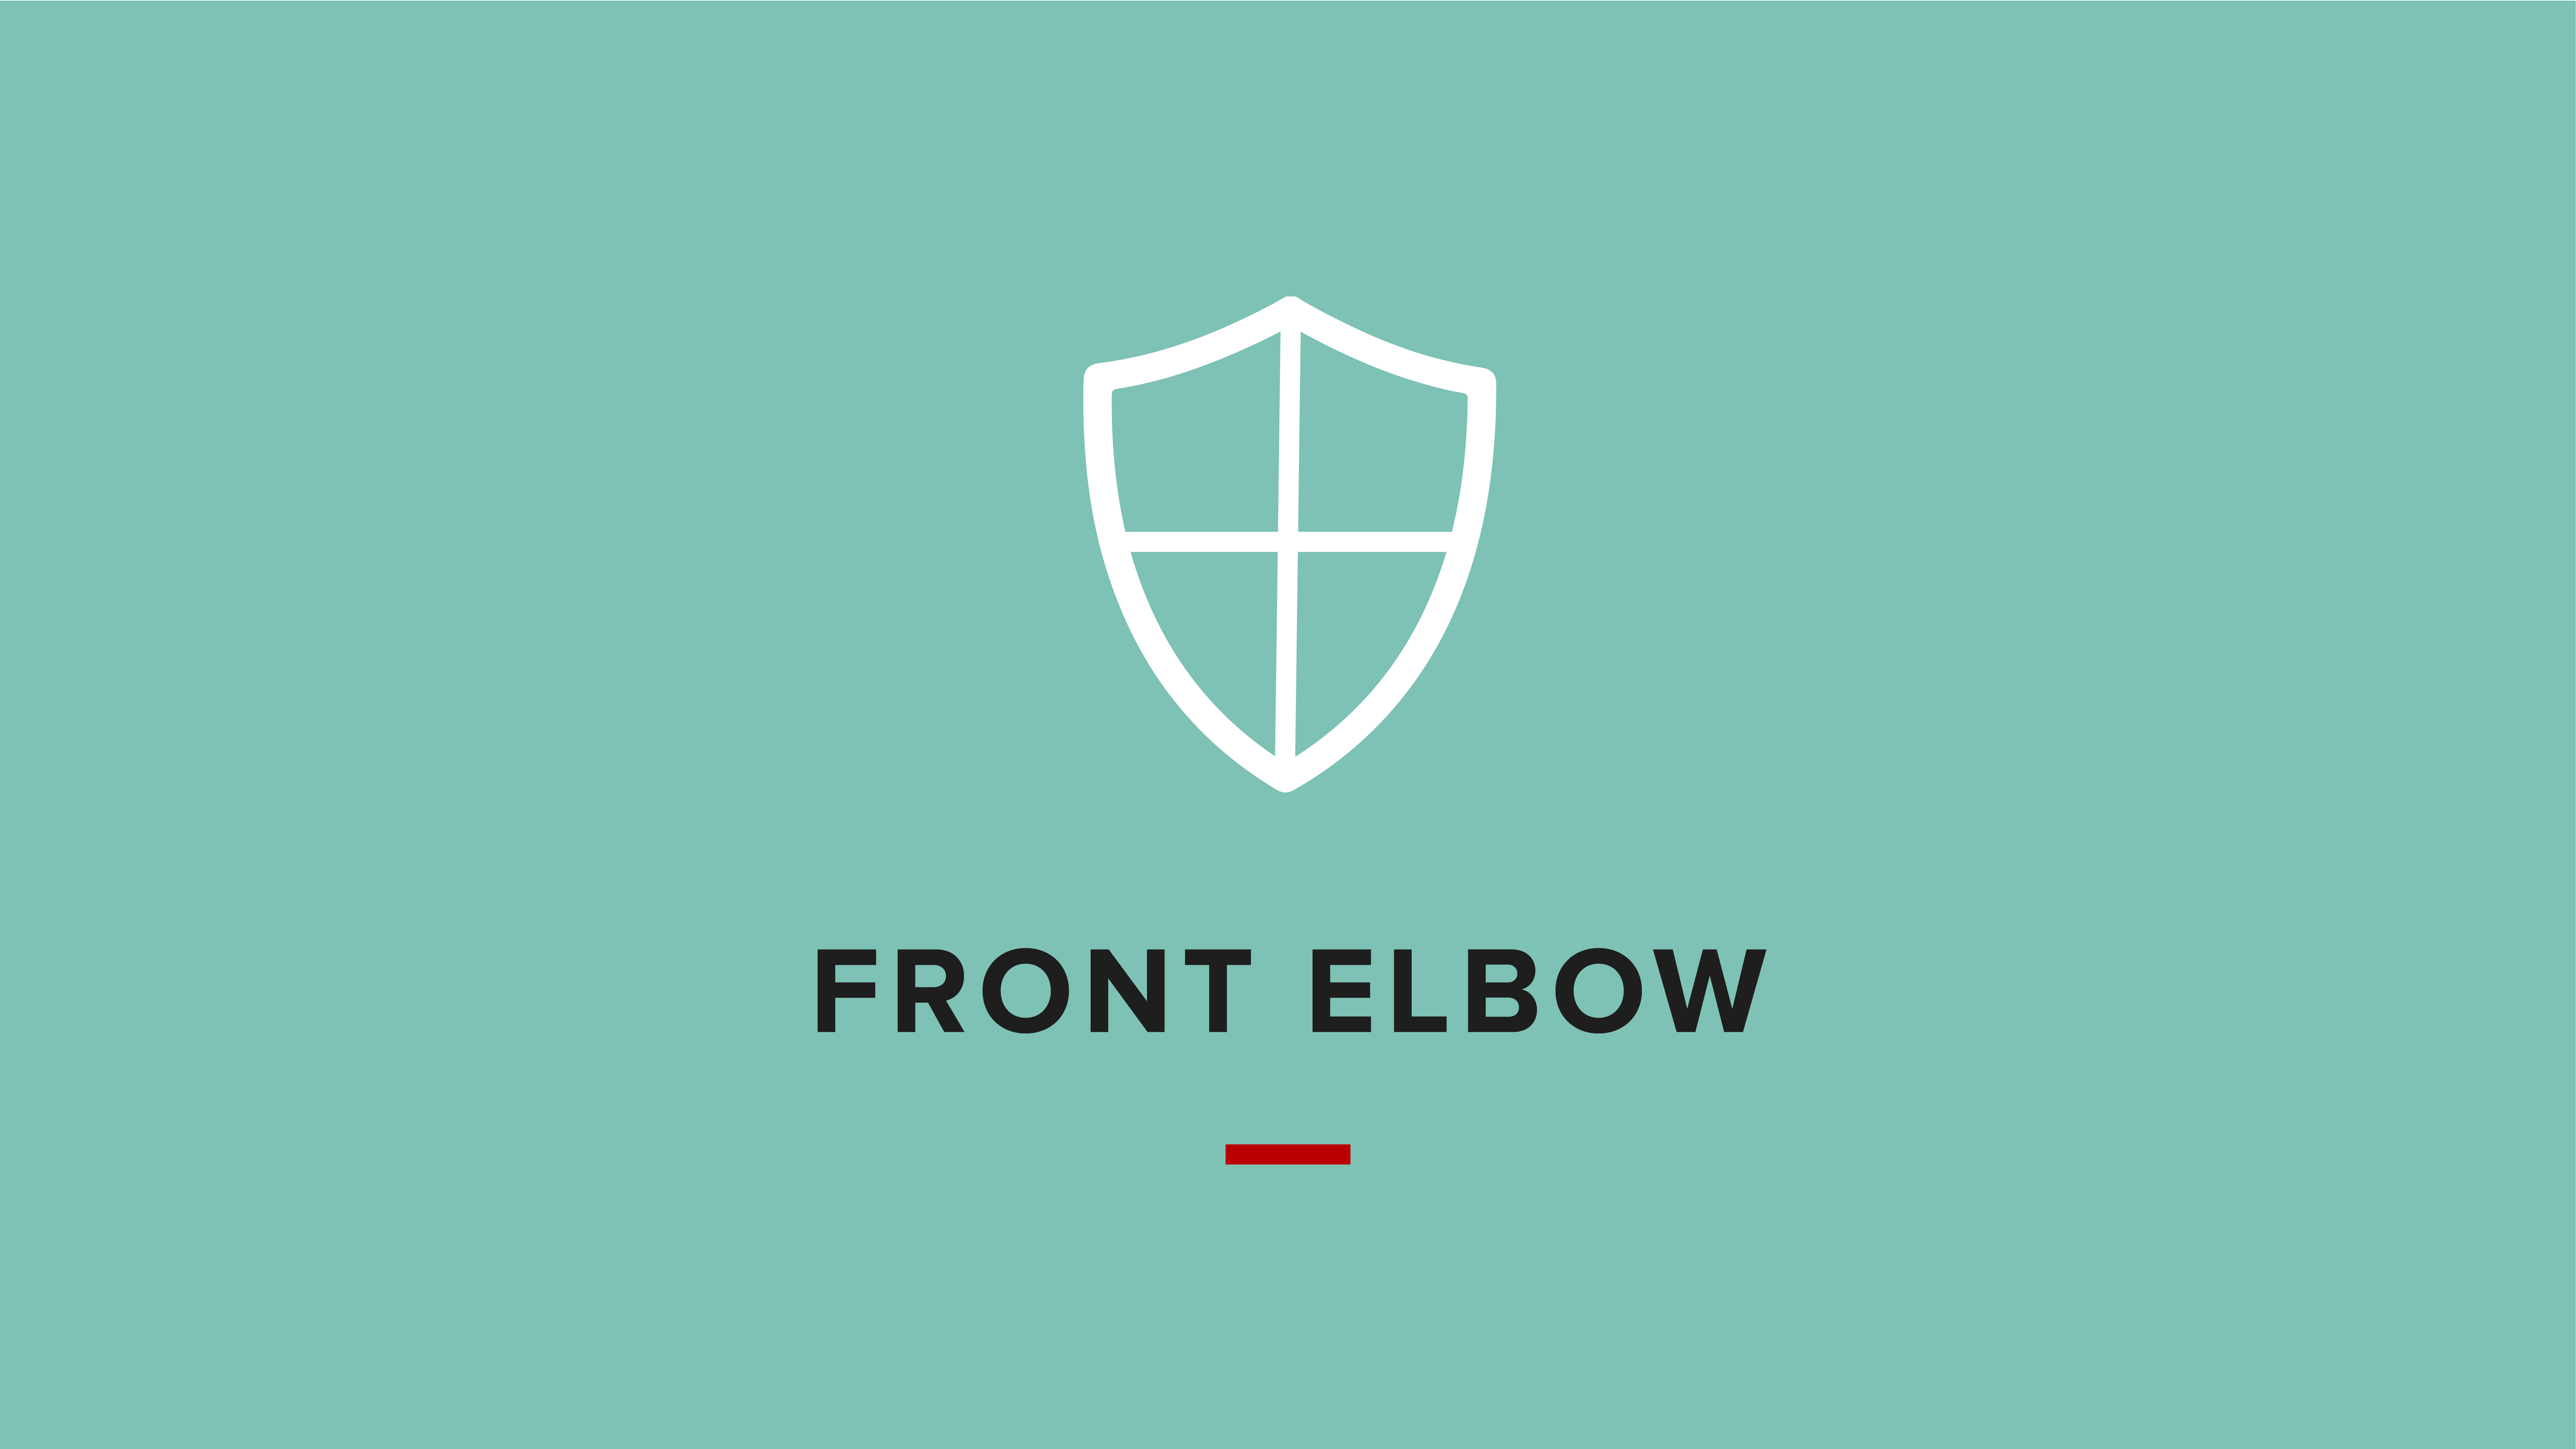 Image with icon of a shield for the front elbow self defense tactic.